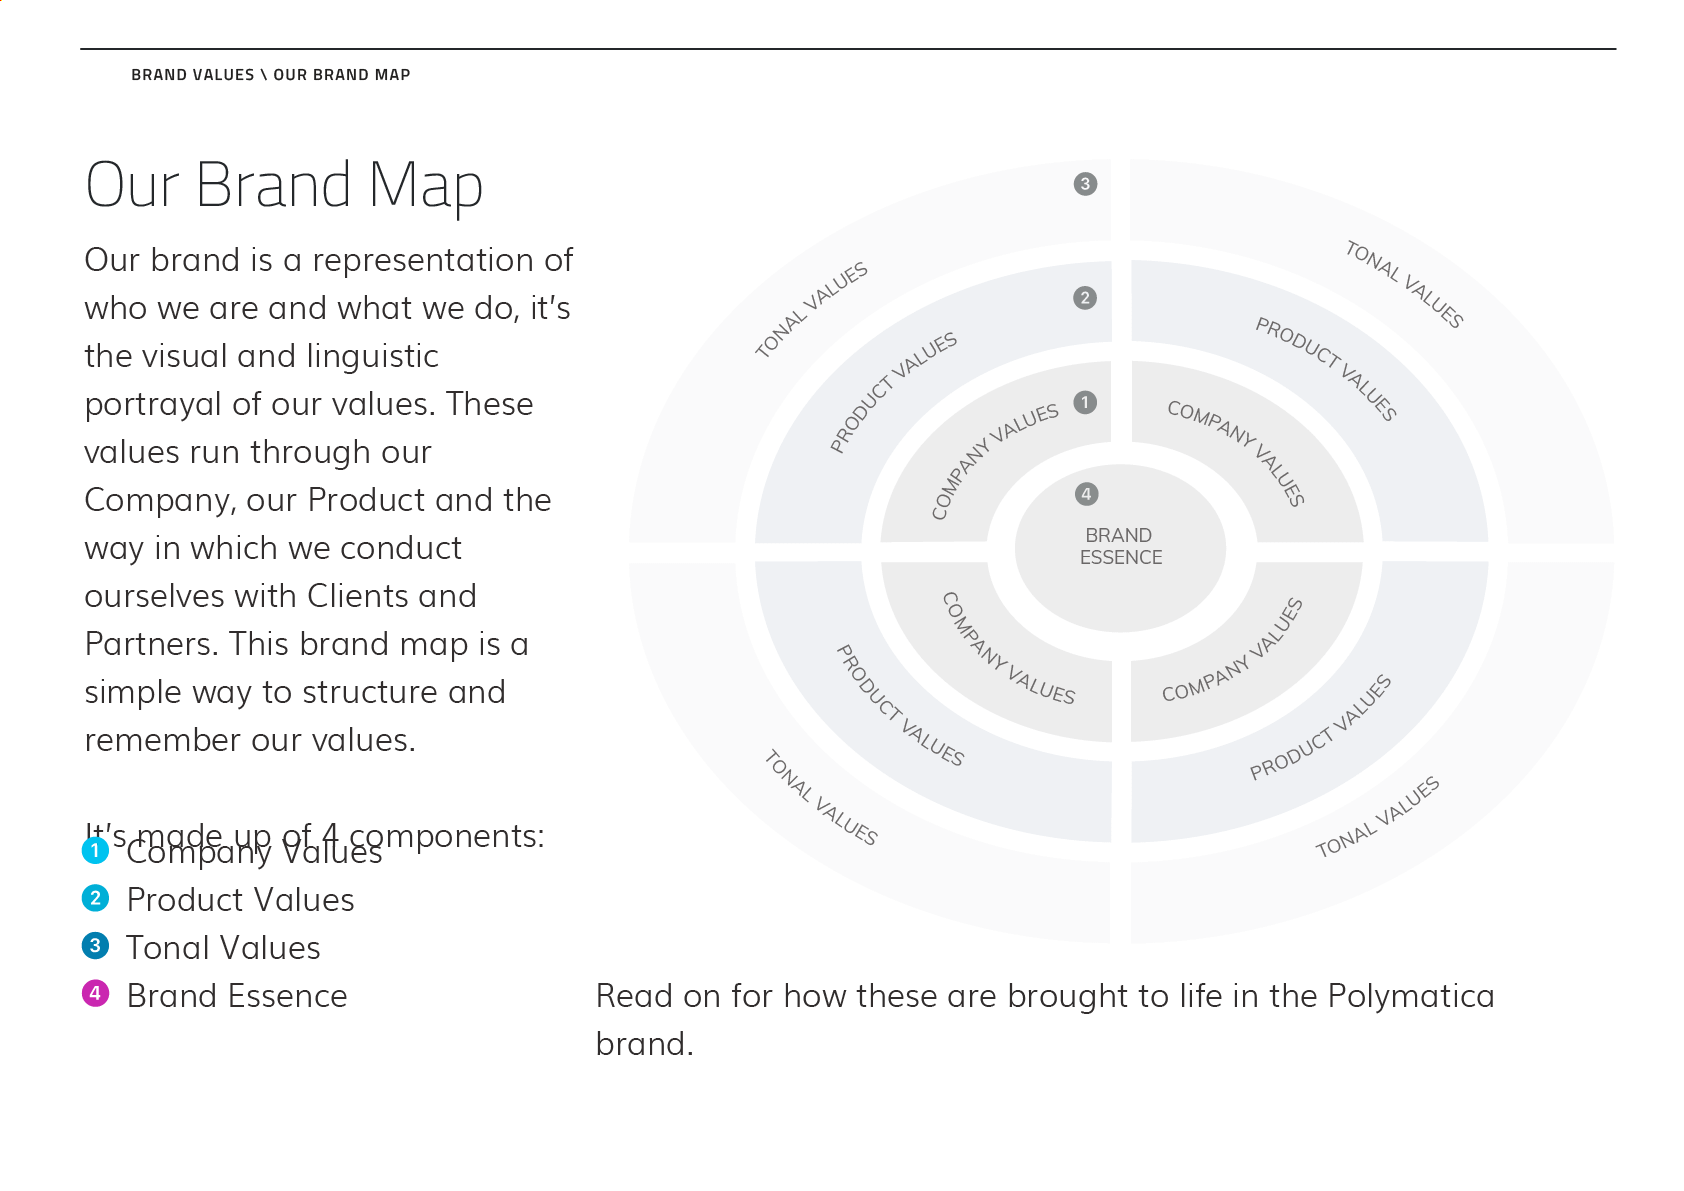 Our Brand Map (Brand Values Definition)